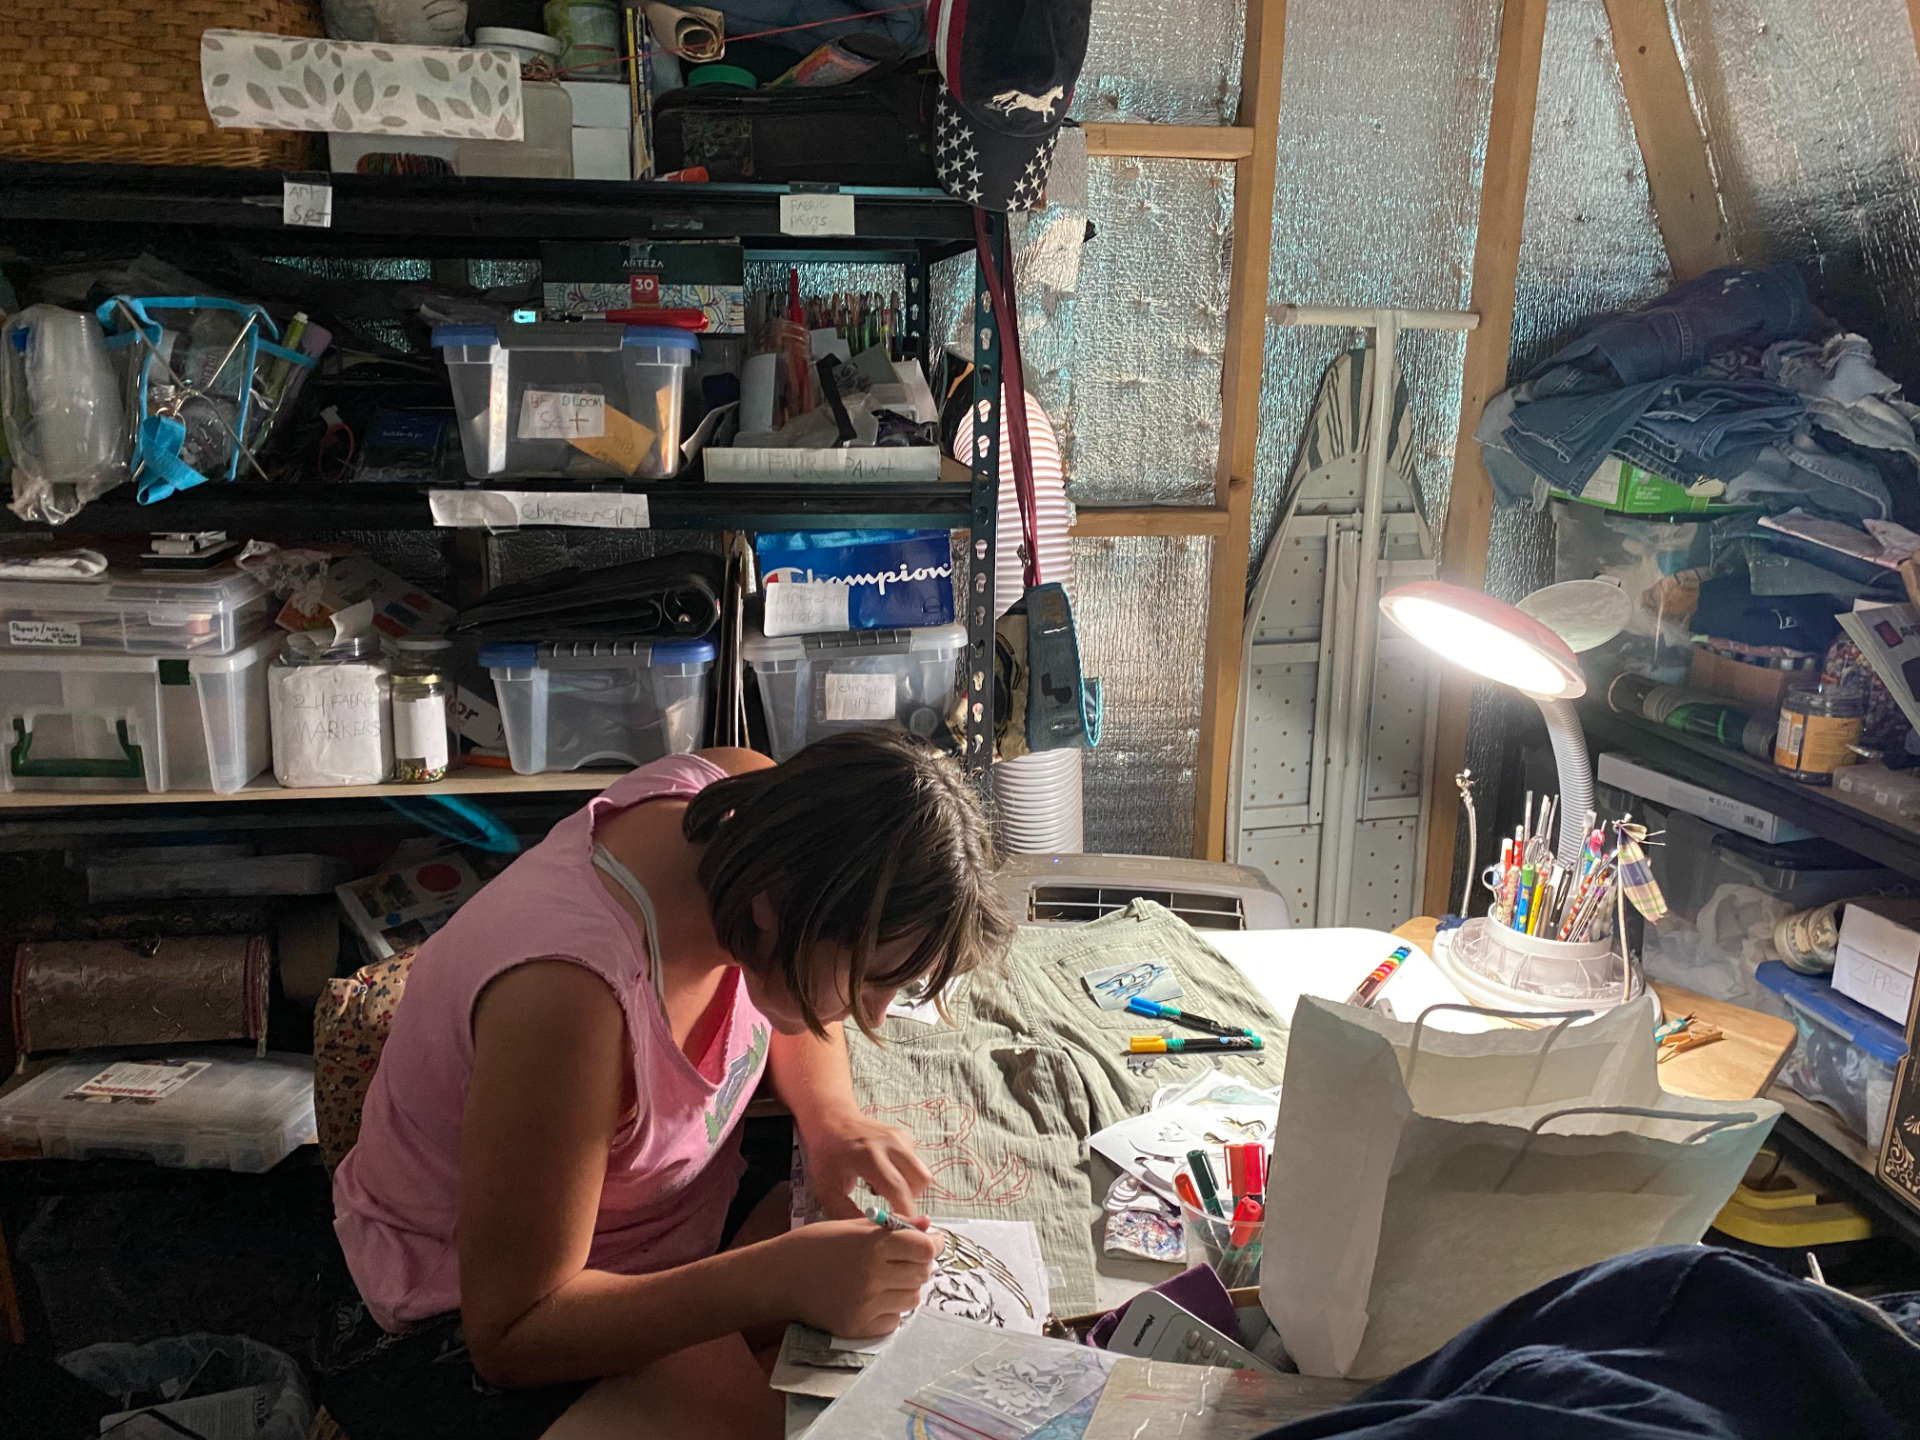 A woman bends over some crafting work in a shed, with a lamp hovering over her work.